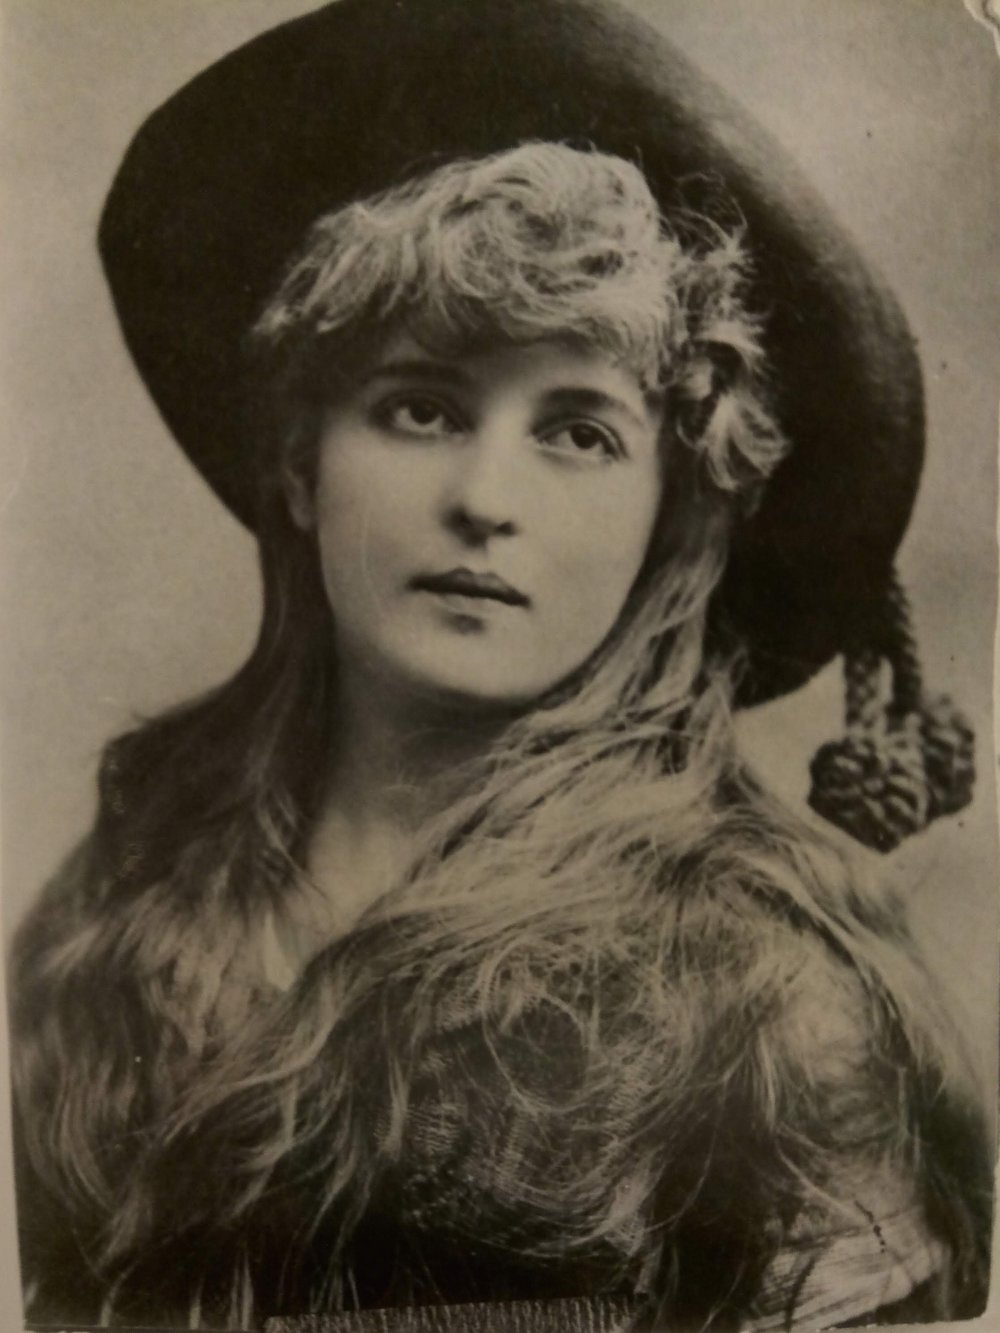 Belle Archer - Most photographed stage actress in the 1890s